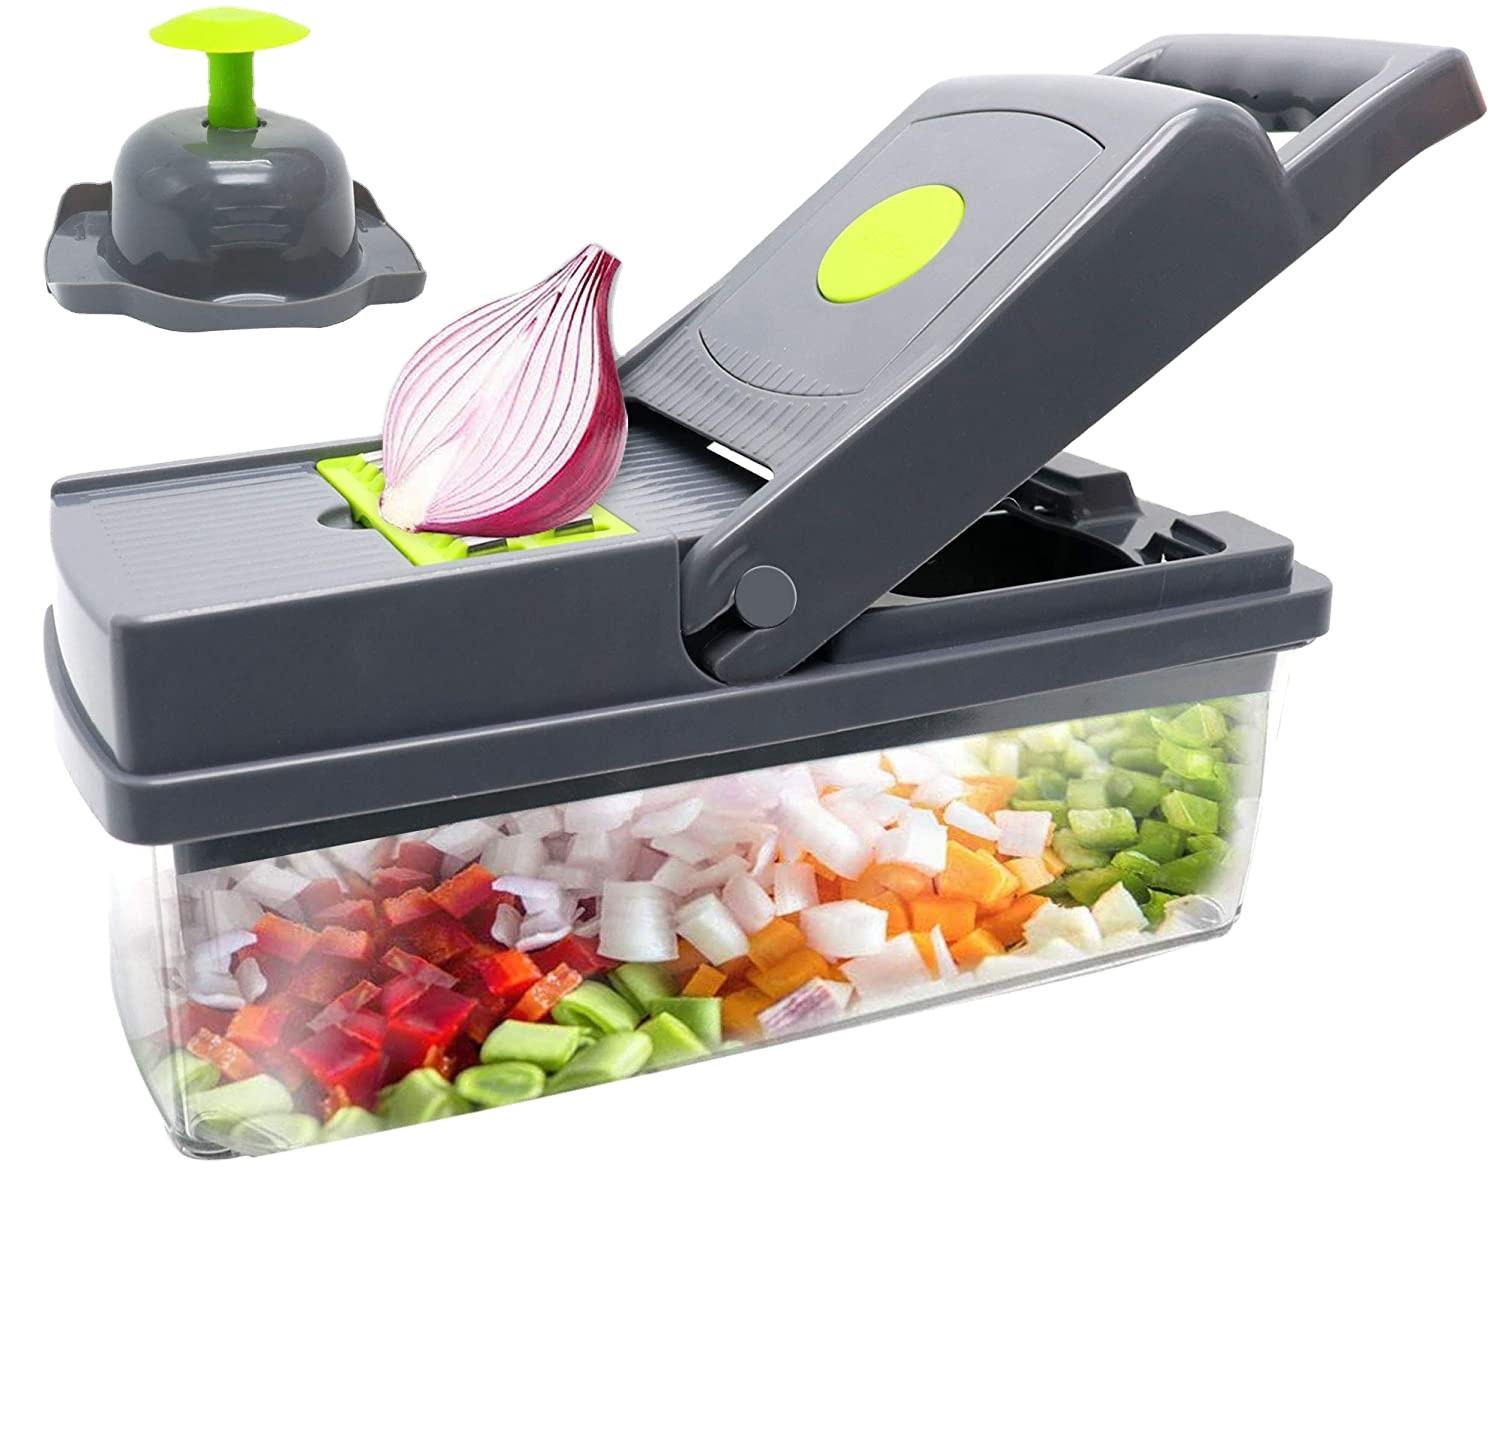 Multi-Function 14 In 1 Food Peeler With Container 8 Blades Onion Slicer Dicer Kitchen Food Vegetable Chopper Cutter